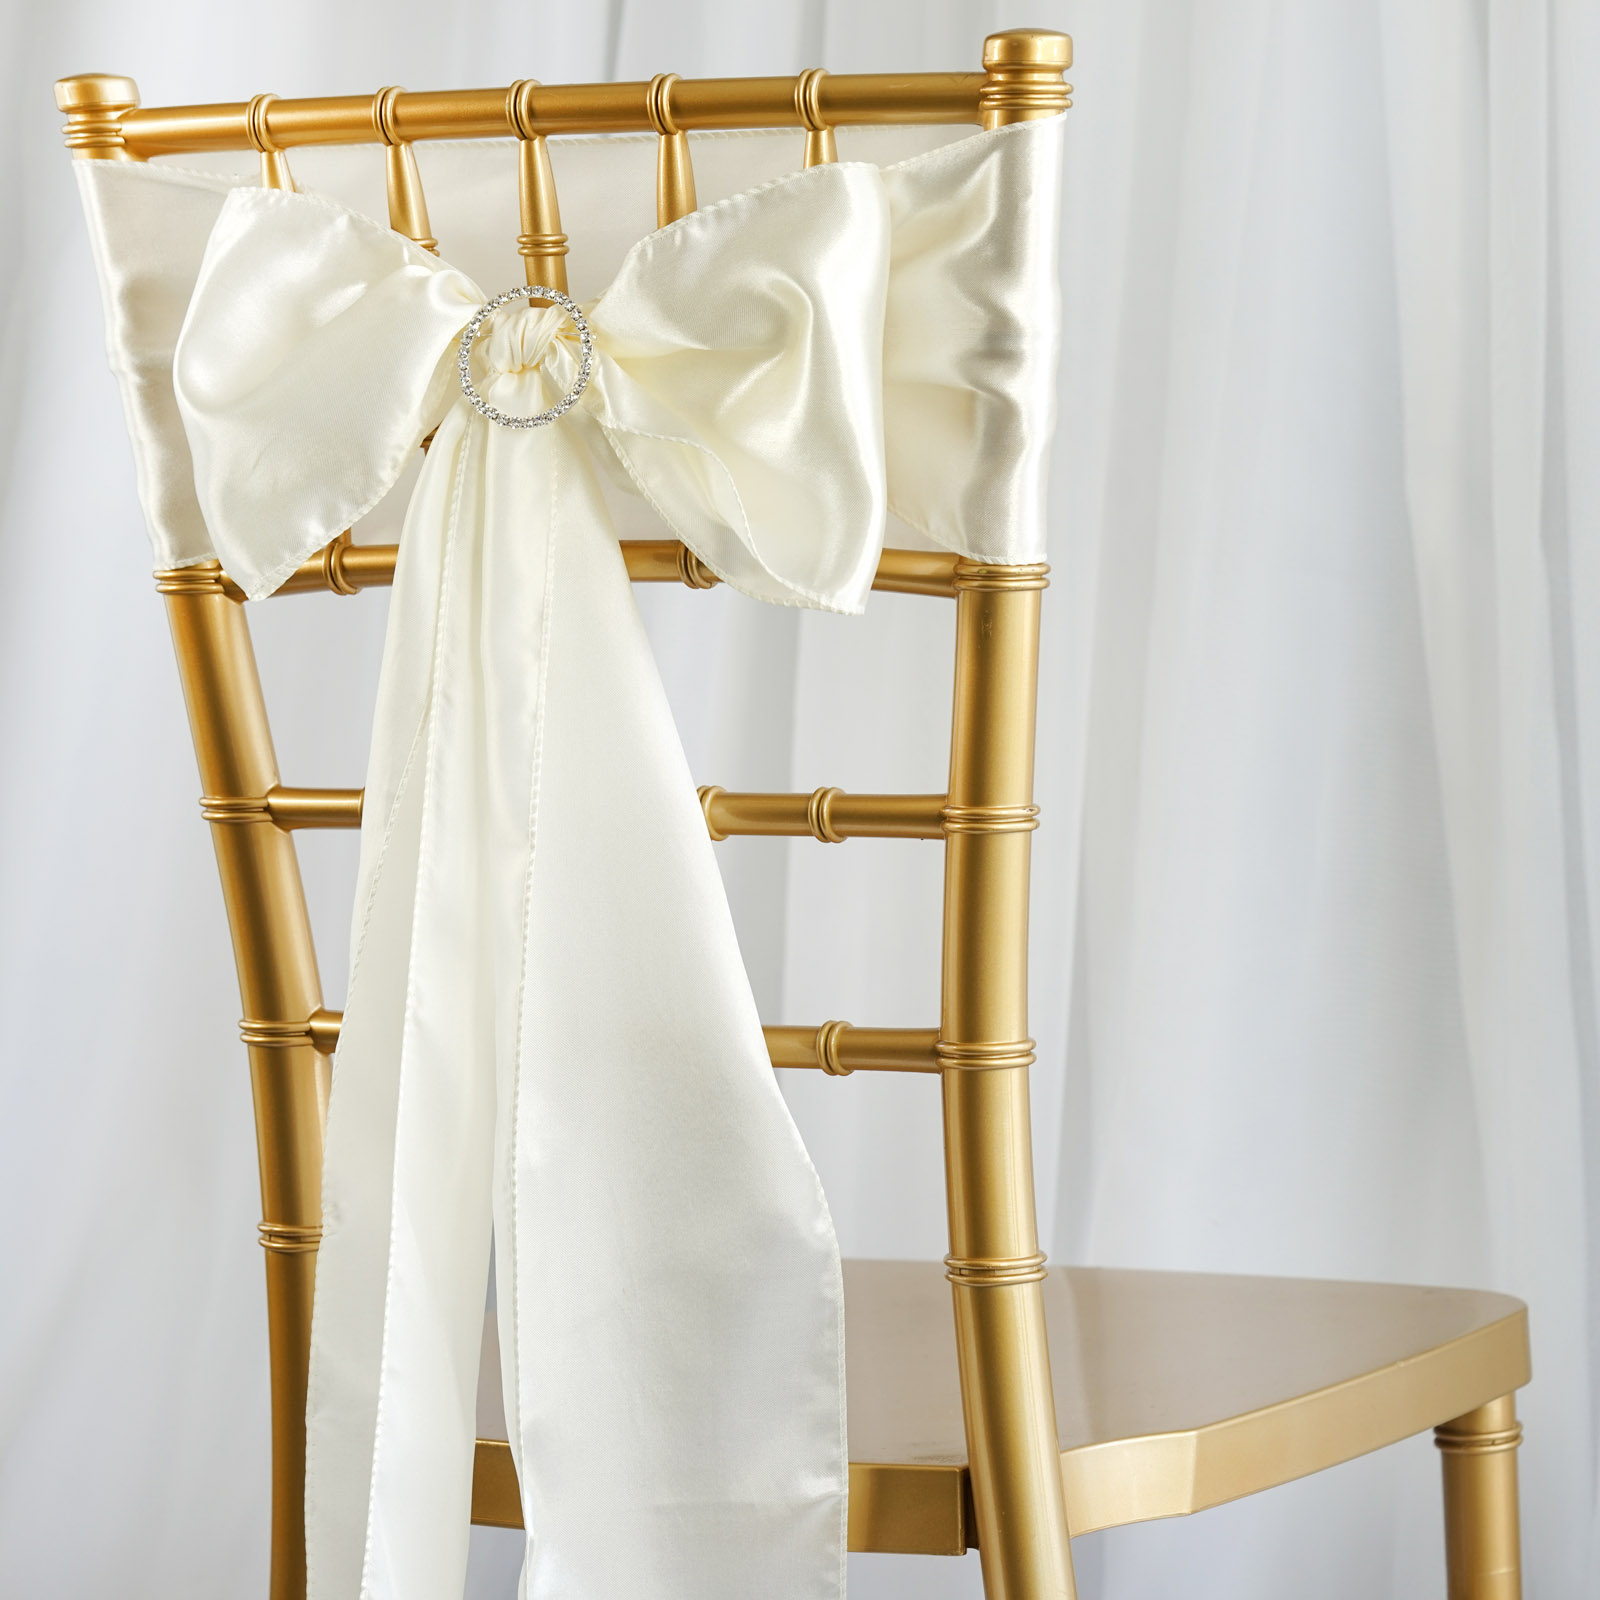 BalsaCircle 5 New Satin Chair Sashes Bows Ties - Wedding Party Ceremony Reception Event Decorations Unique Supplies